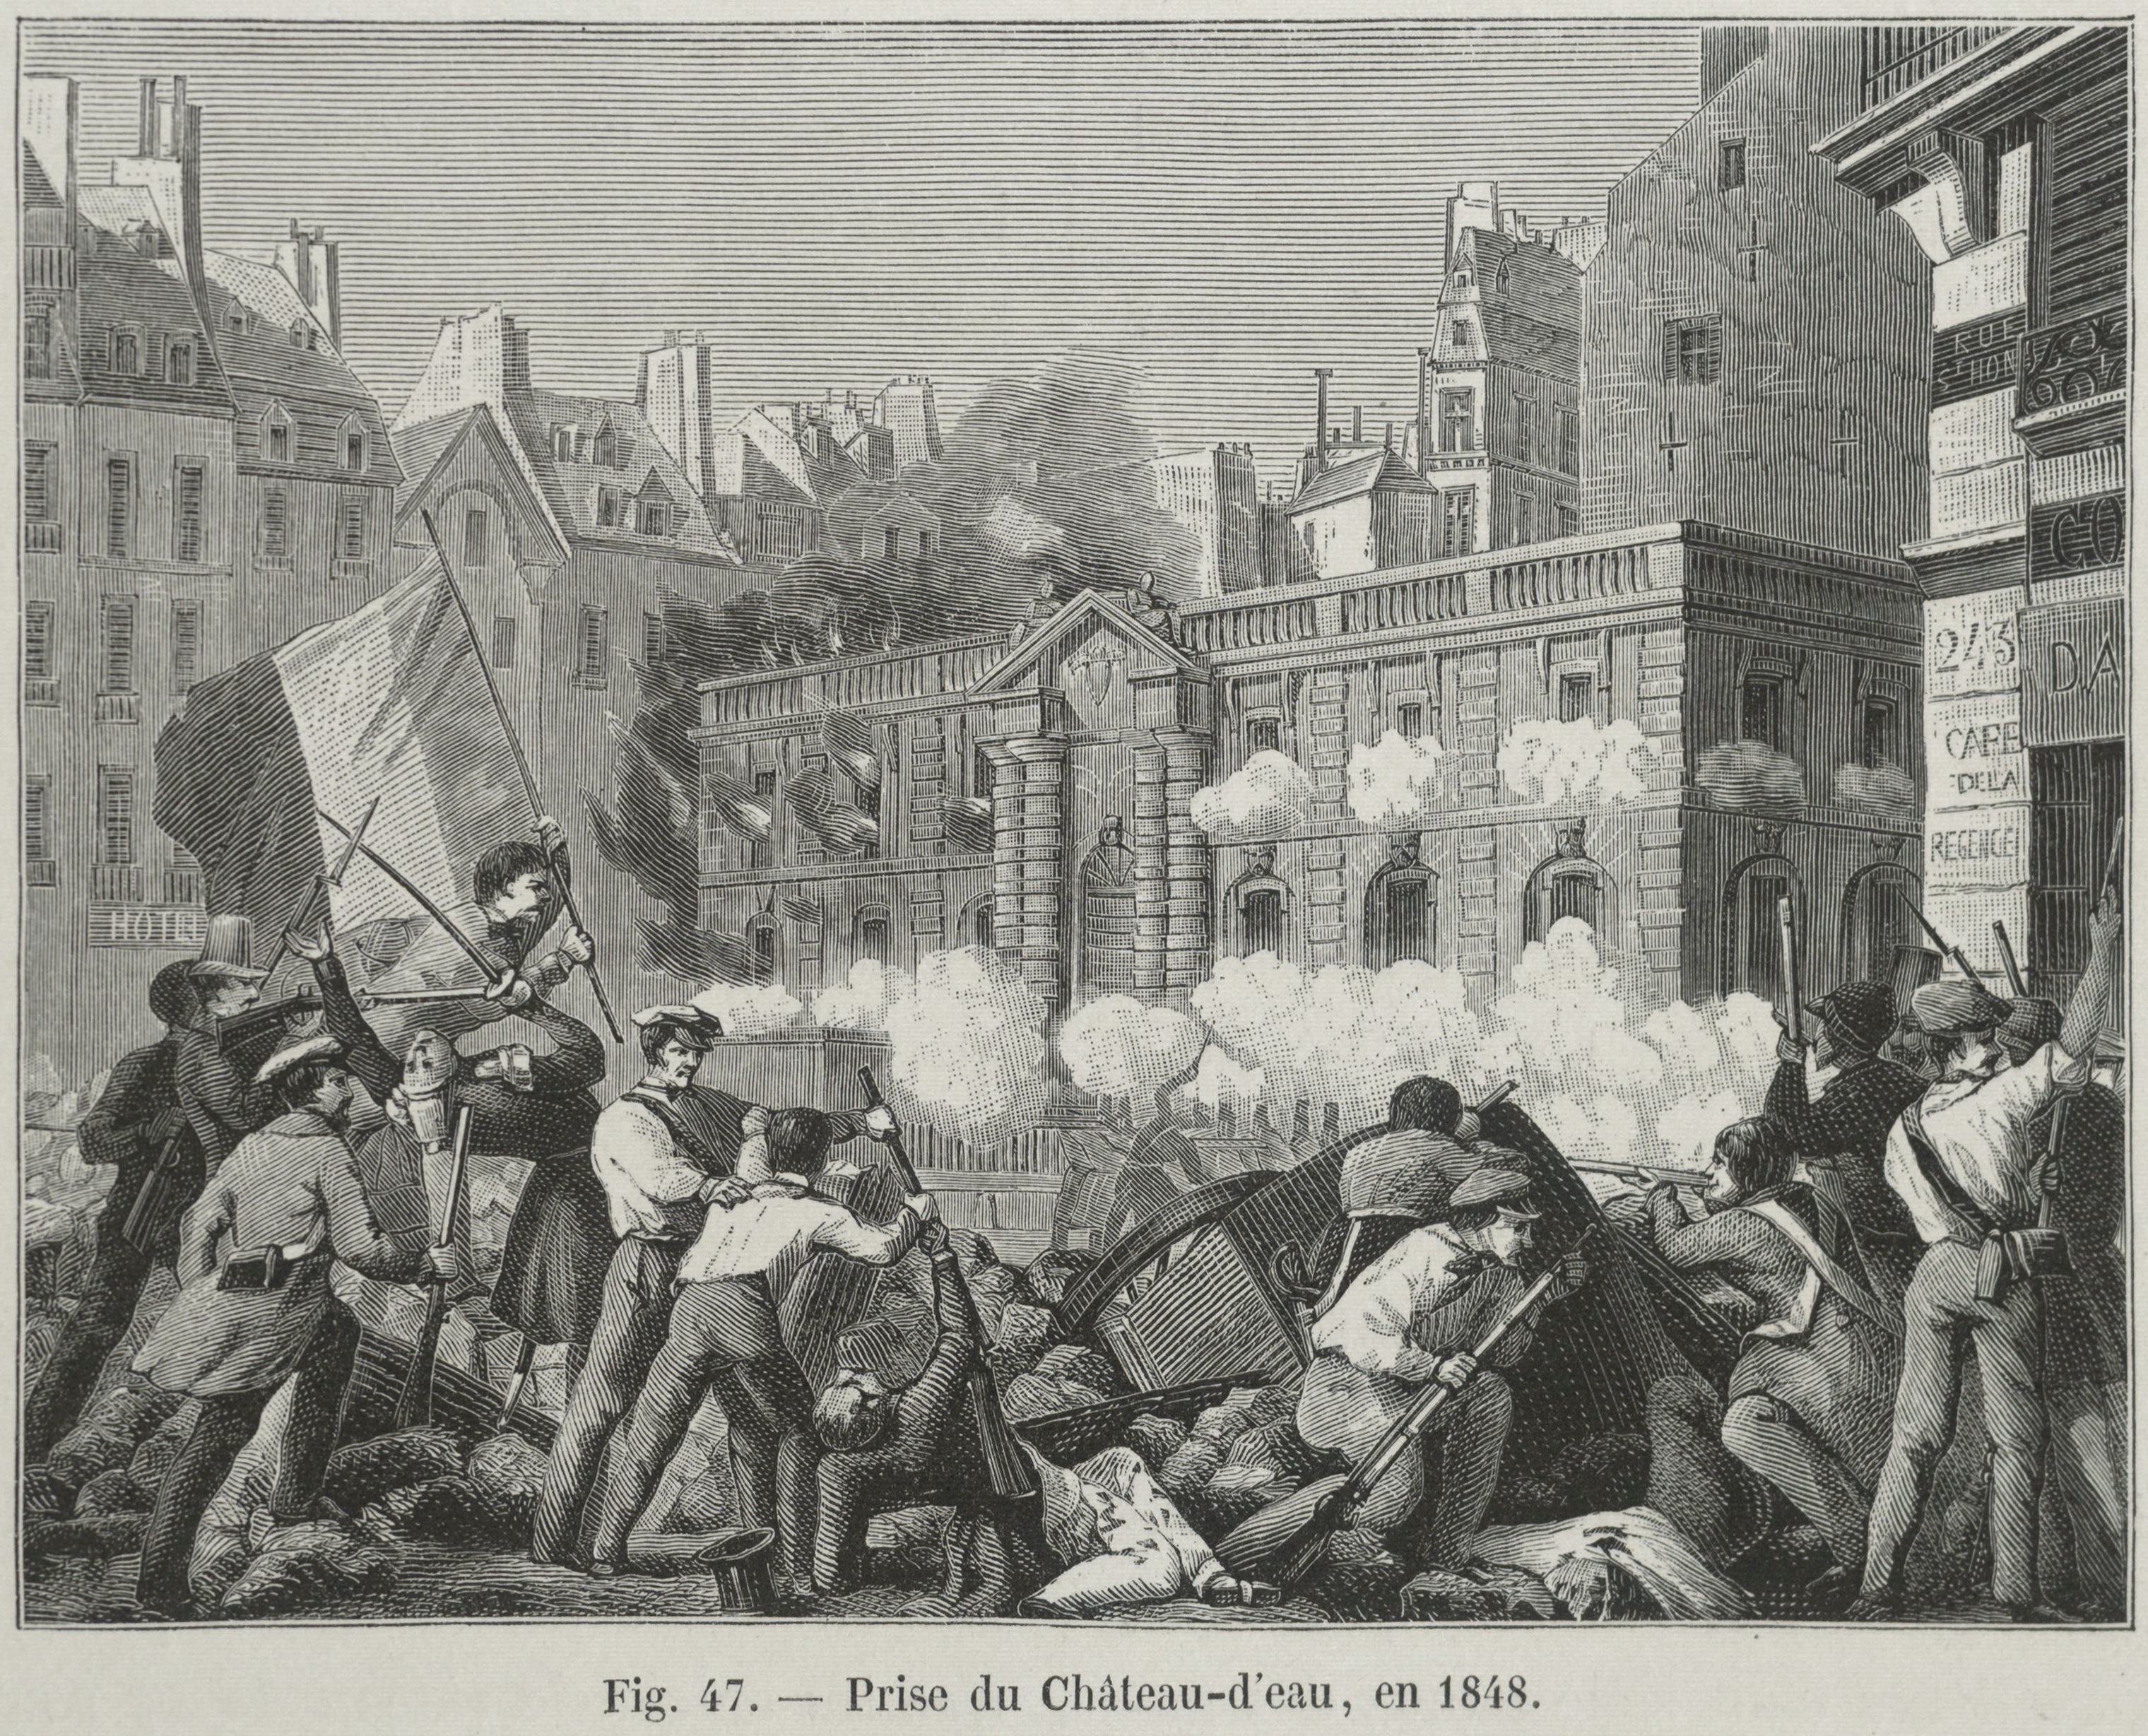 the revolt of the black bourgeoisie Popular protest and rebellions in the early modern period, the vast majority of europeans lacked a formal voice in the major governmental decisions that affected their lives kings ruled without much contact with their subjects, towns were governed by oligarchies of well-to-do families, and rural.